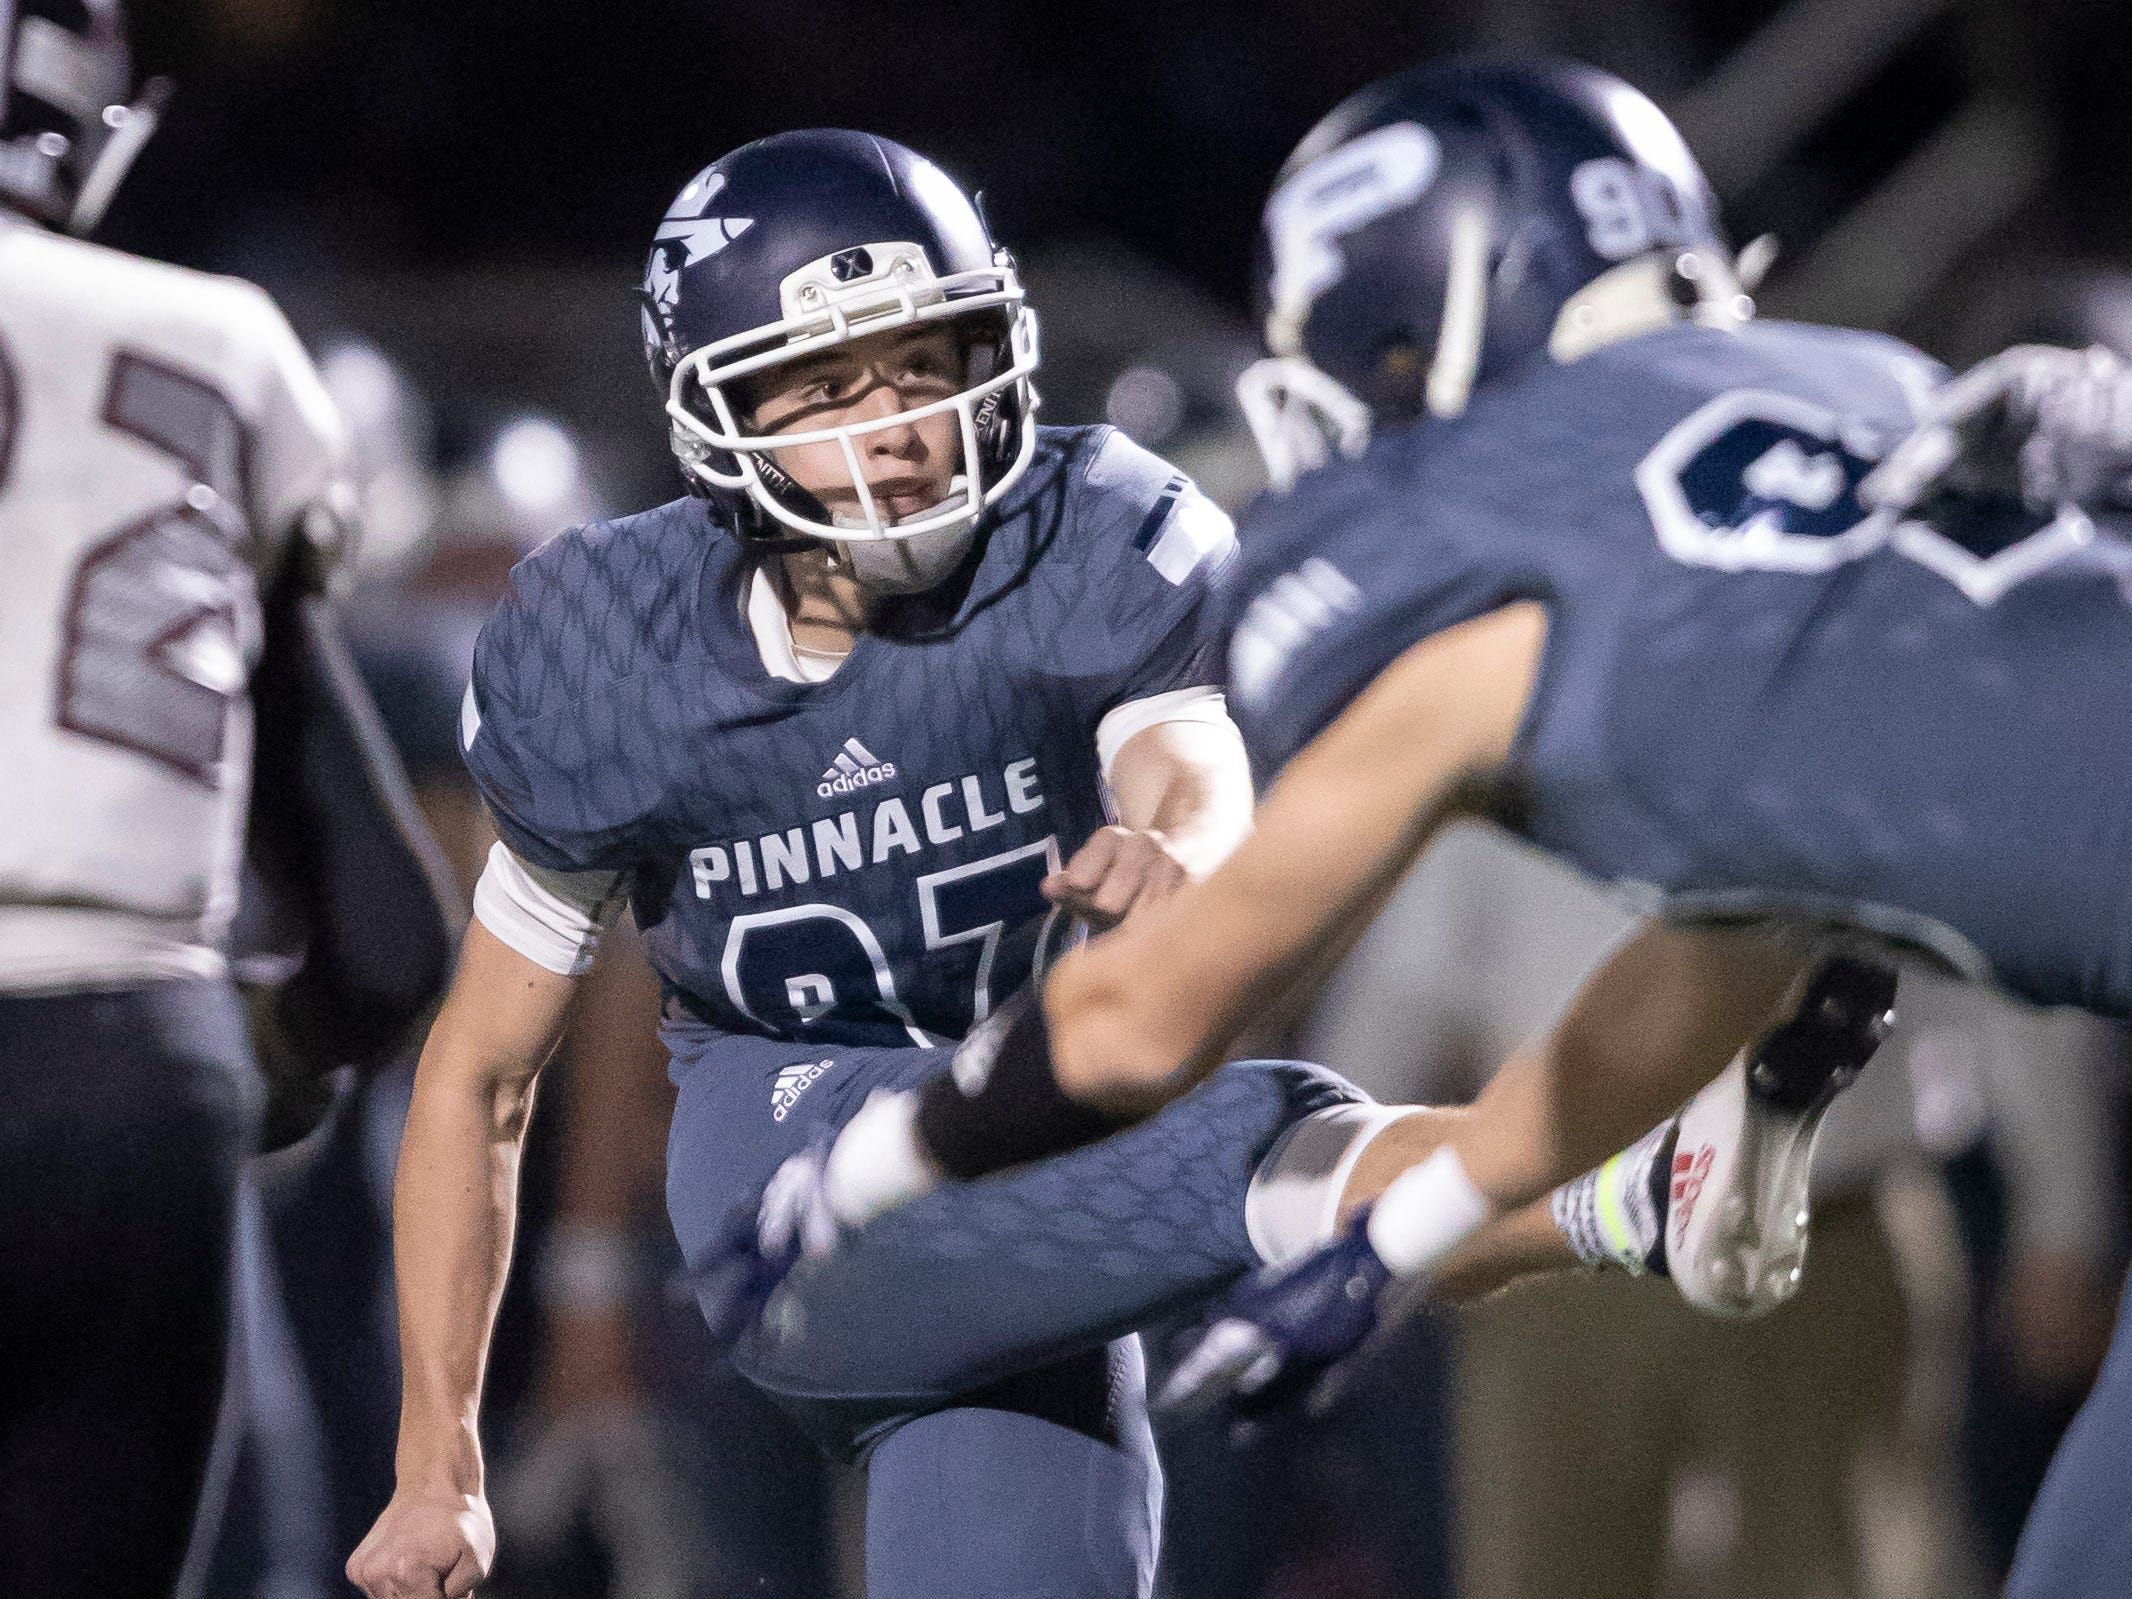 Junior kicker Dominic Persi (87) of the Pinnacle Pioneers kicks a field goal during the playoff game against the Red Mountain Mountain Lions at Pinnacle High School on Friday, November 9, 2018 in Phoenix, Arizona. #azhsfb